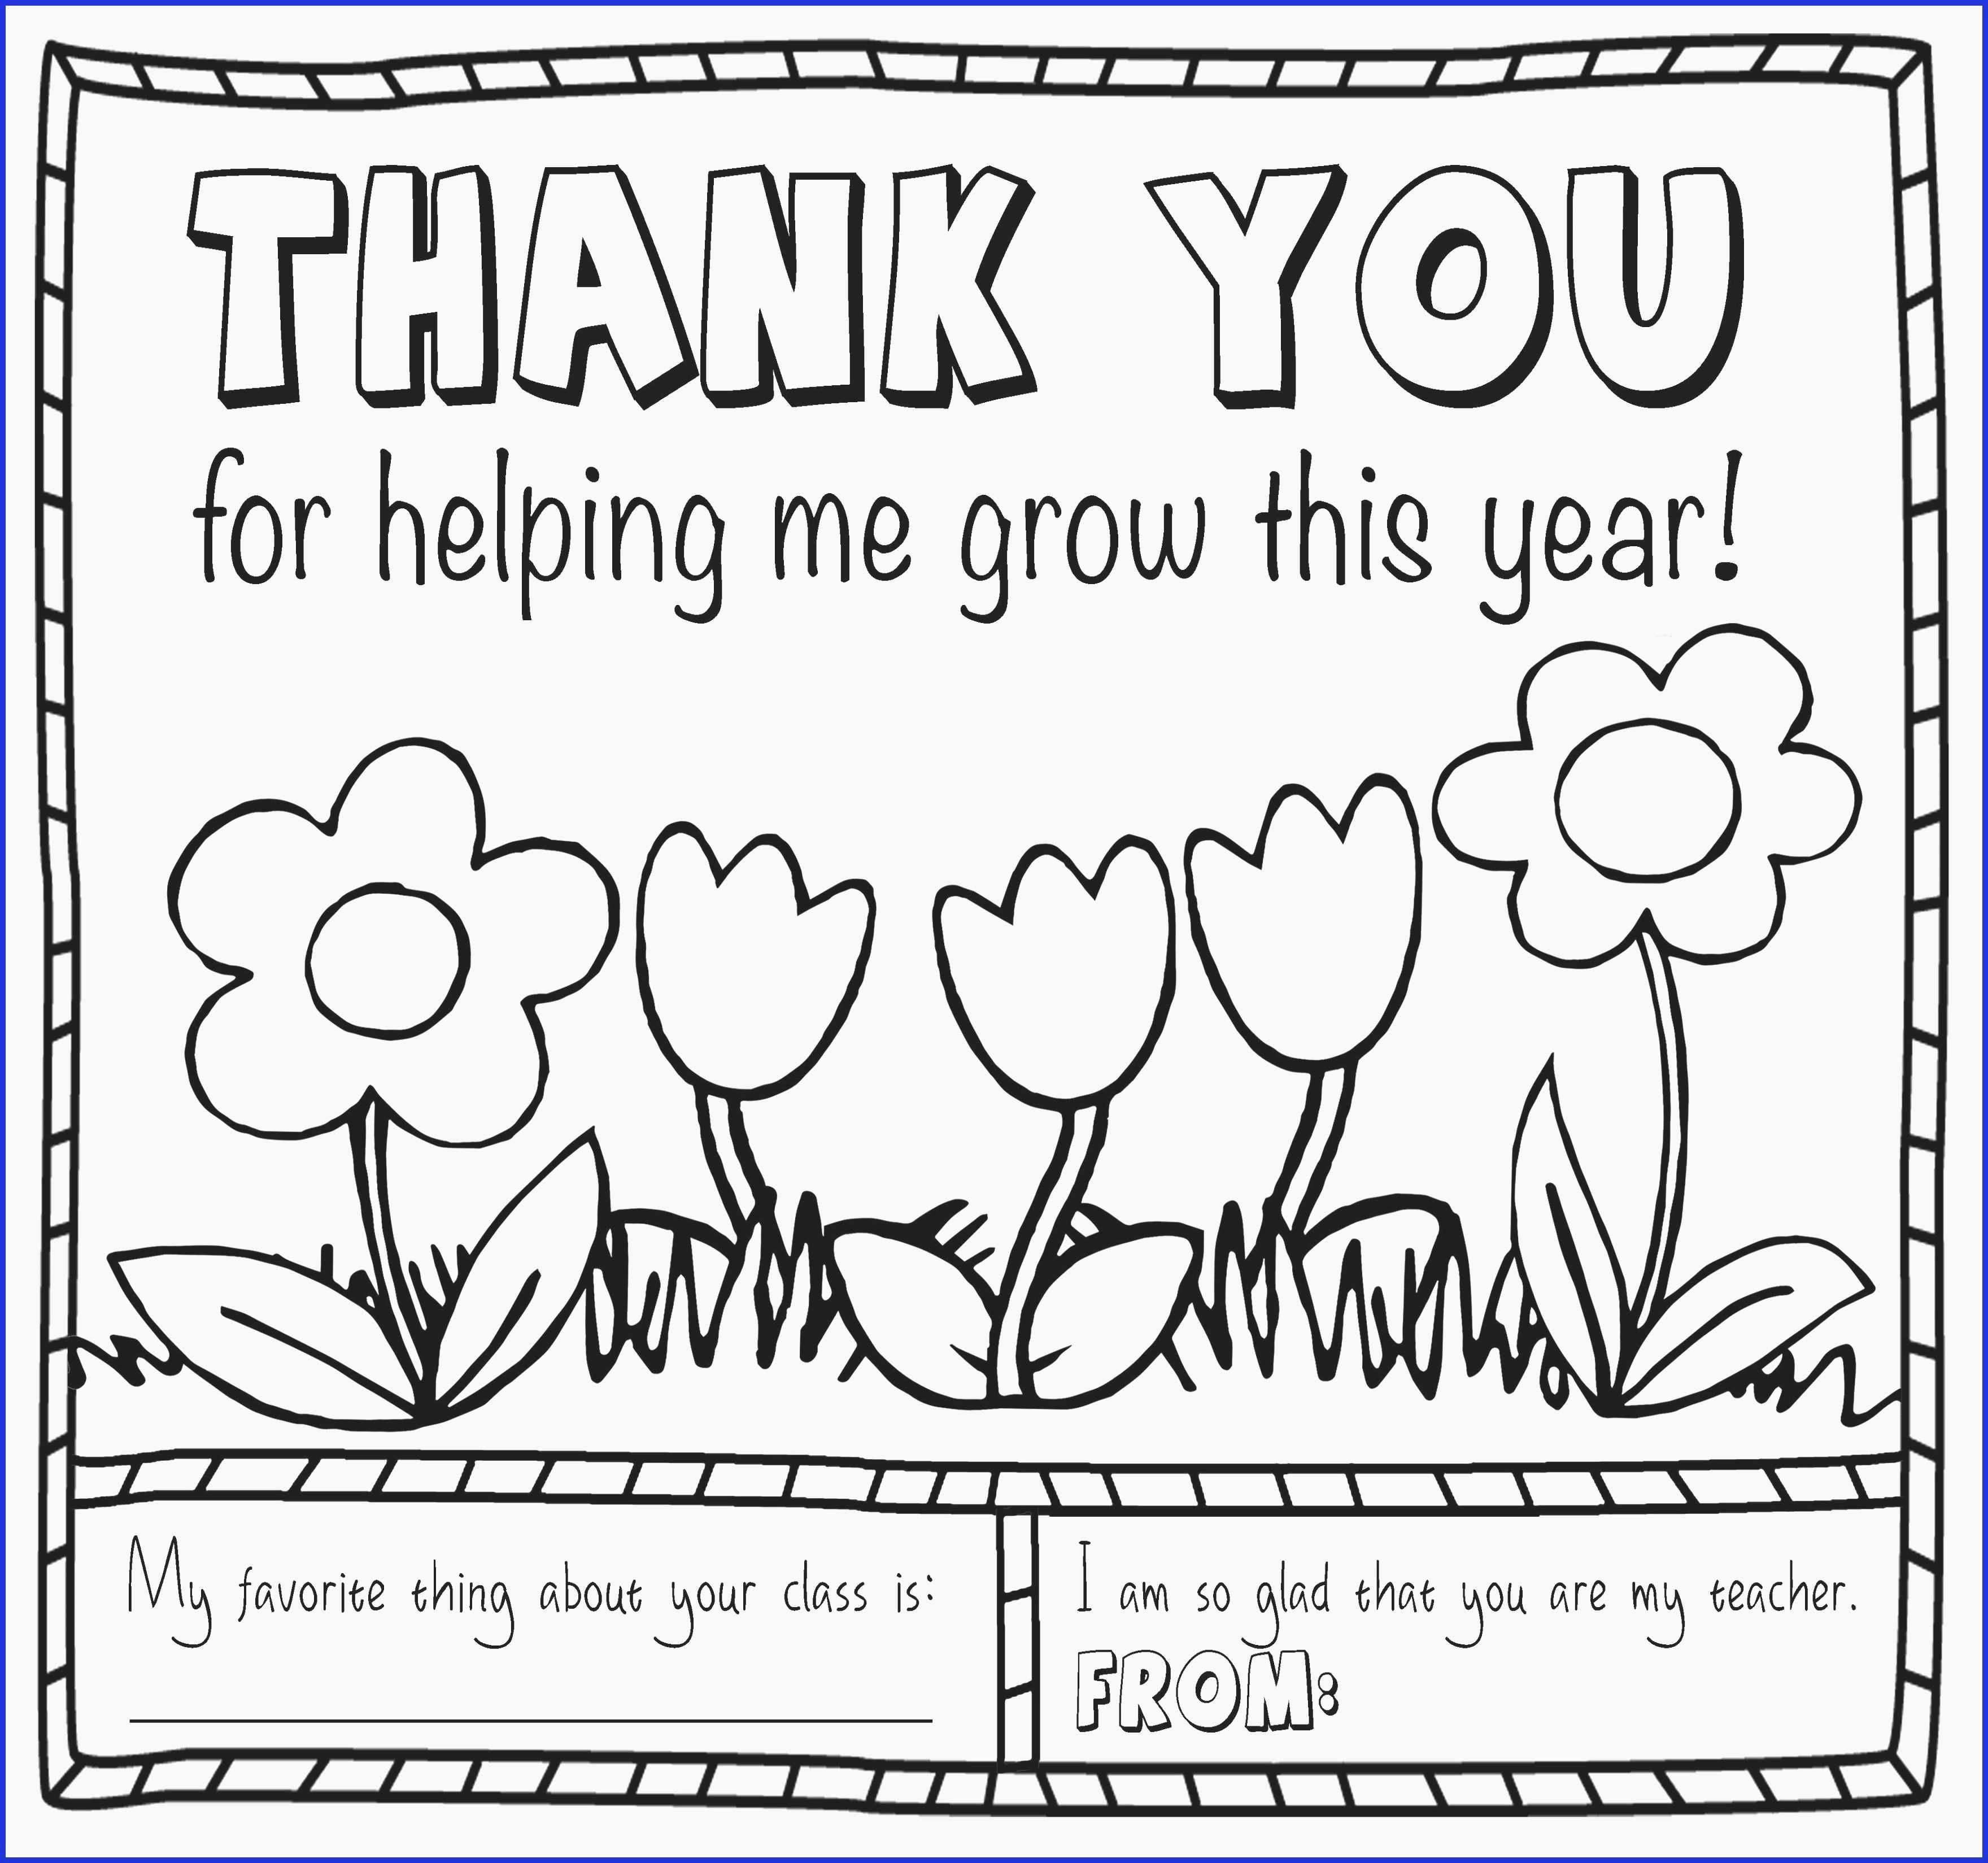 Thank You Tags Printable Unique Coloring Sheets 47 Thank You Teacher Co In 2020 Teacher Appreciation Printables Teacher Appreciation Cards Coloring Pages For Teenagers